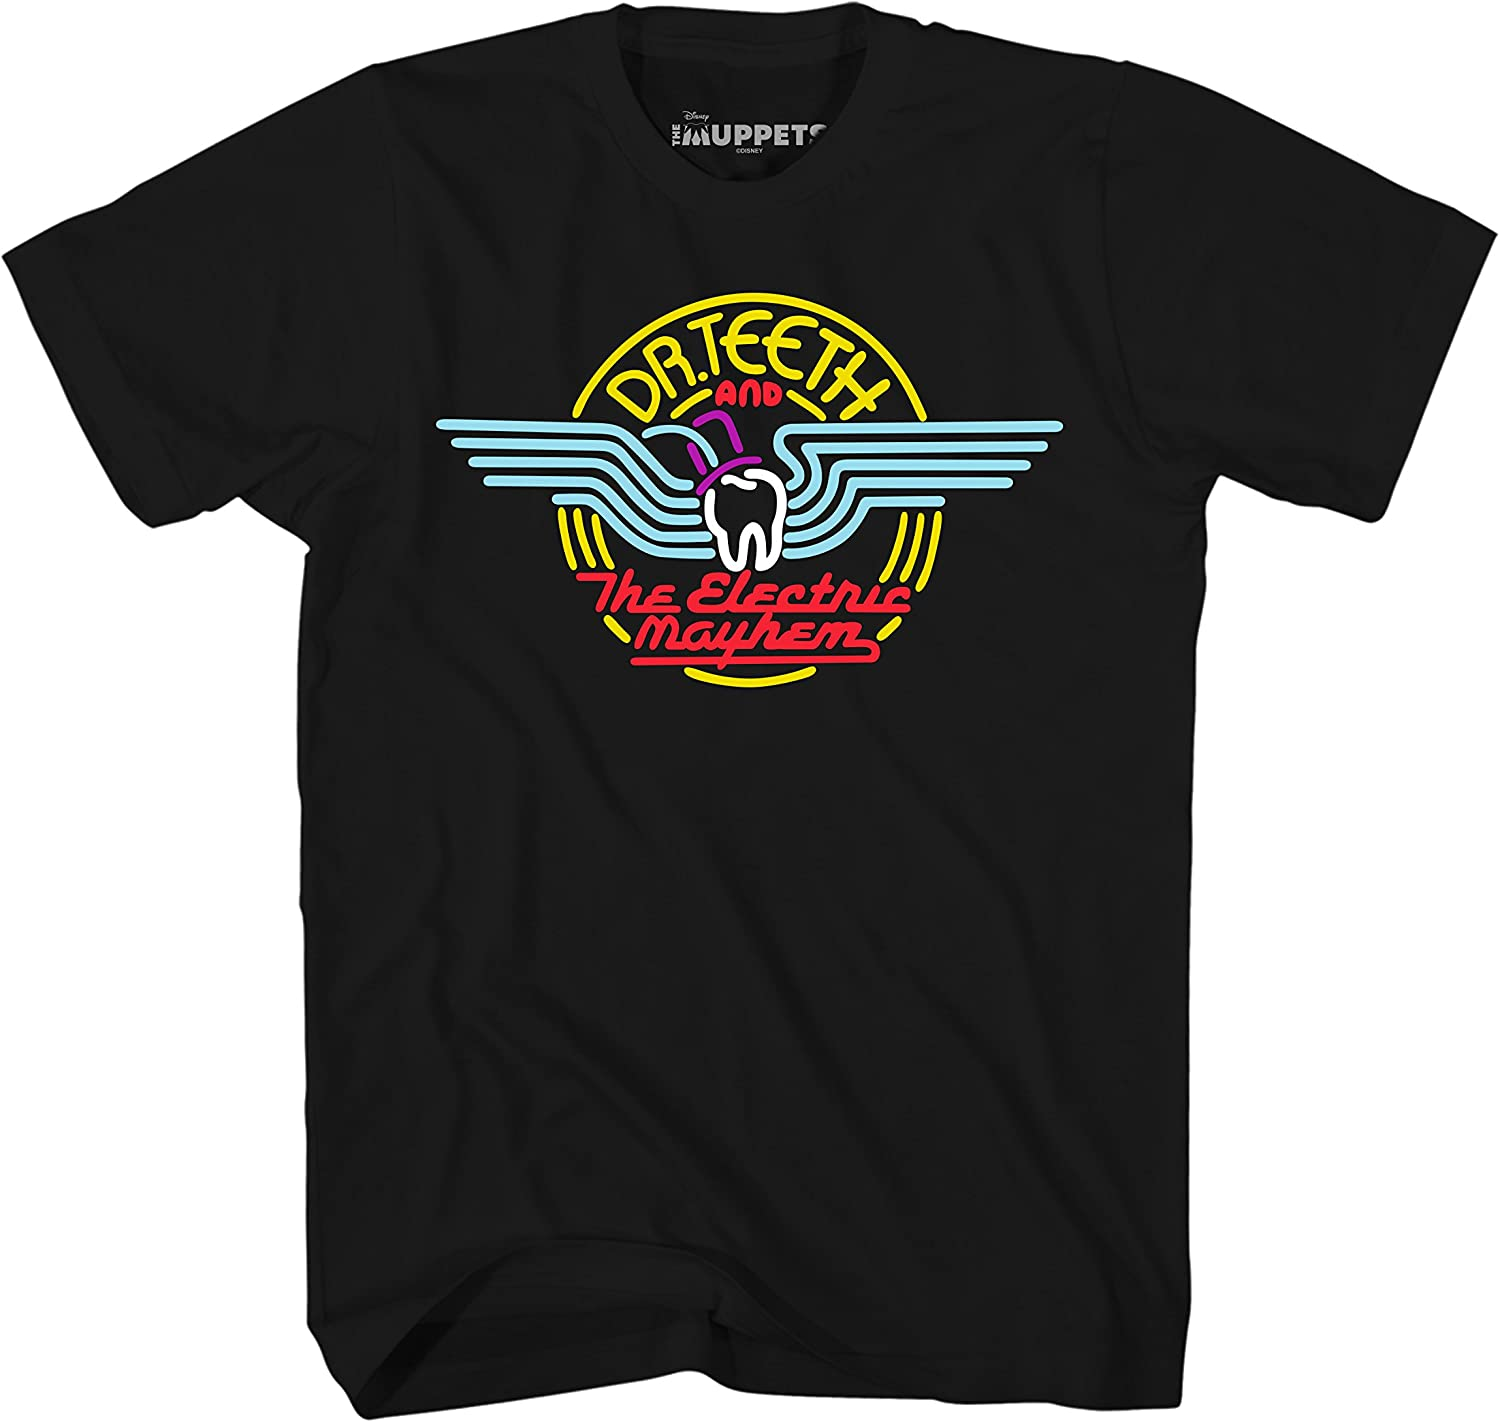 The Muppets Dr. Teeth and The Electric Mayhem Band T-Shirt